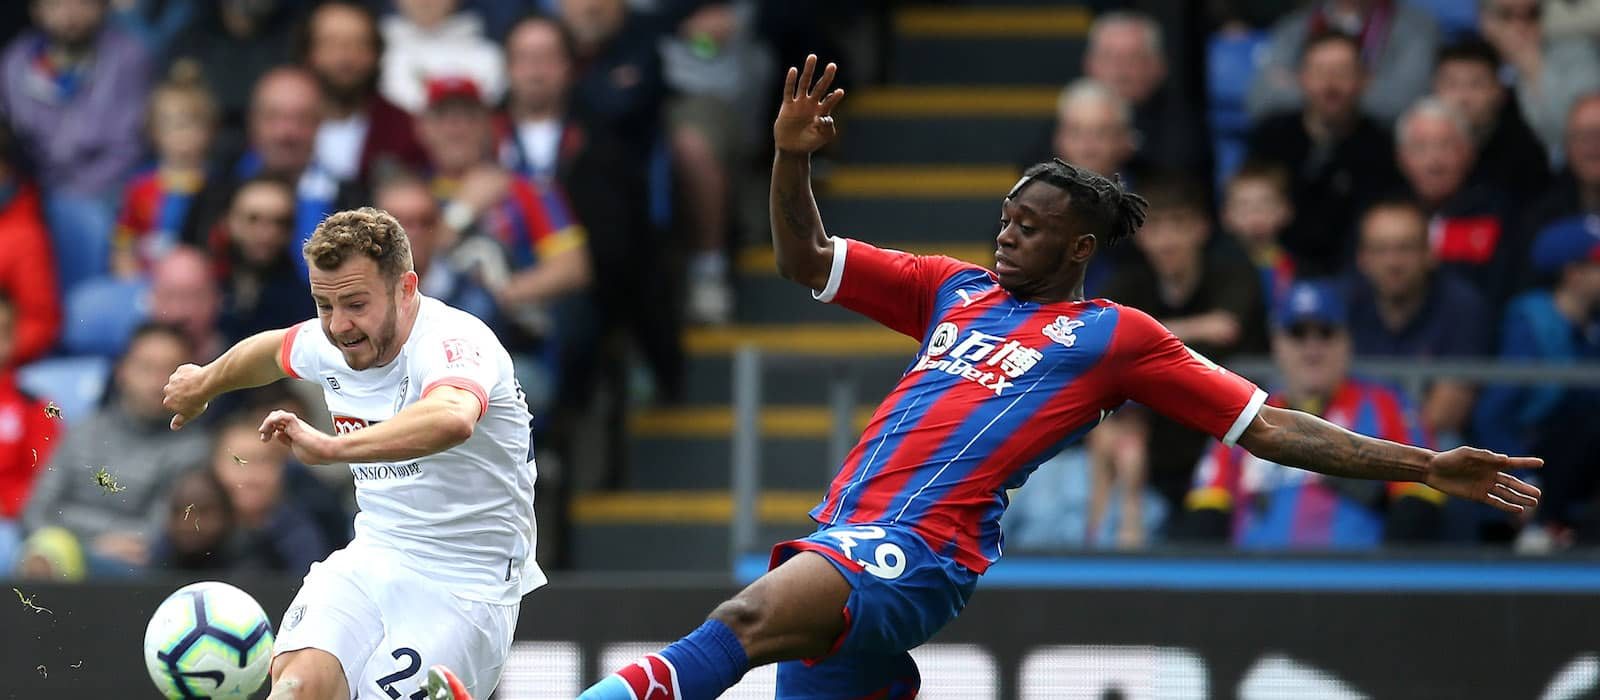 Manchester United to attempt new method to sign Aaron Wan-Bissaka: report